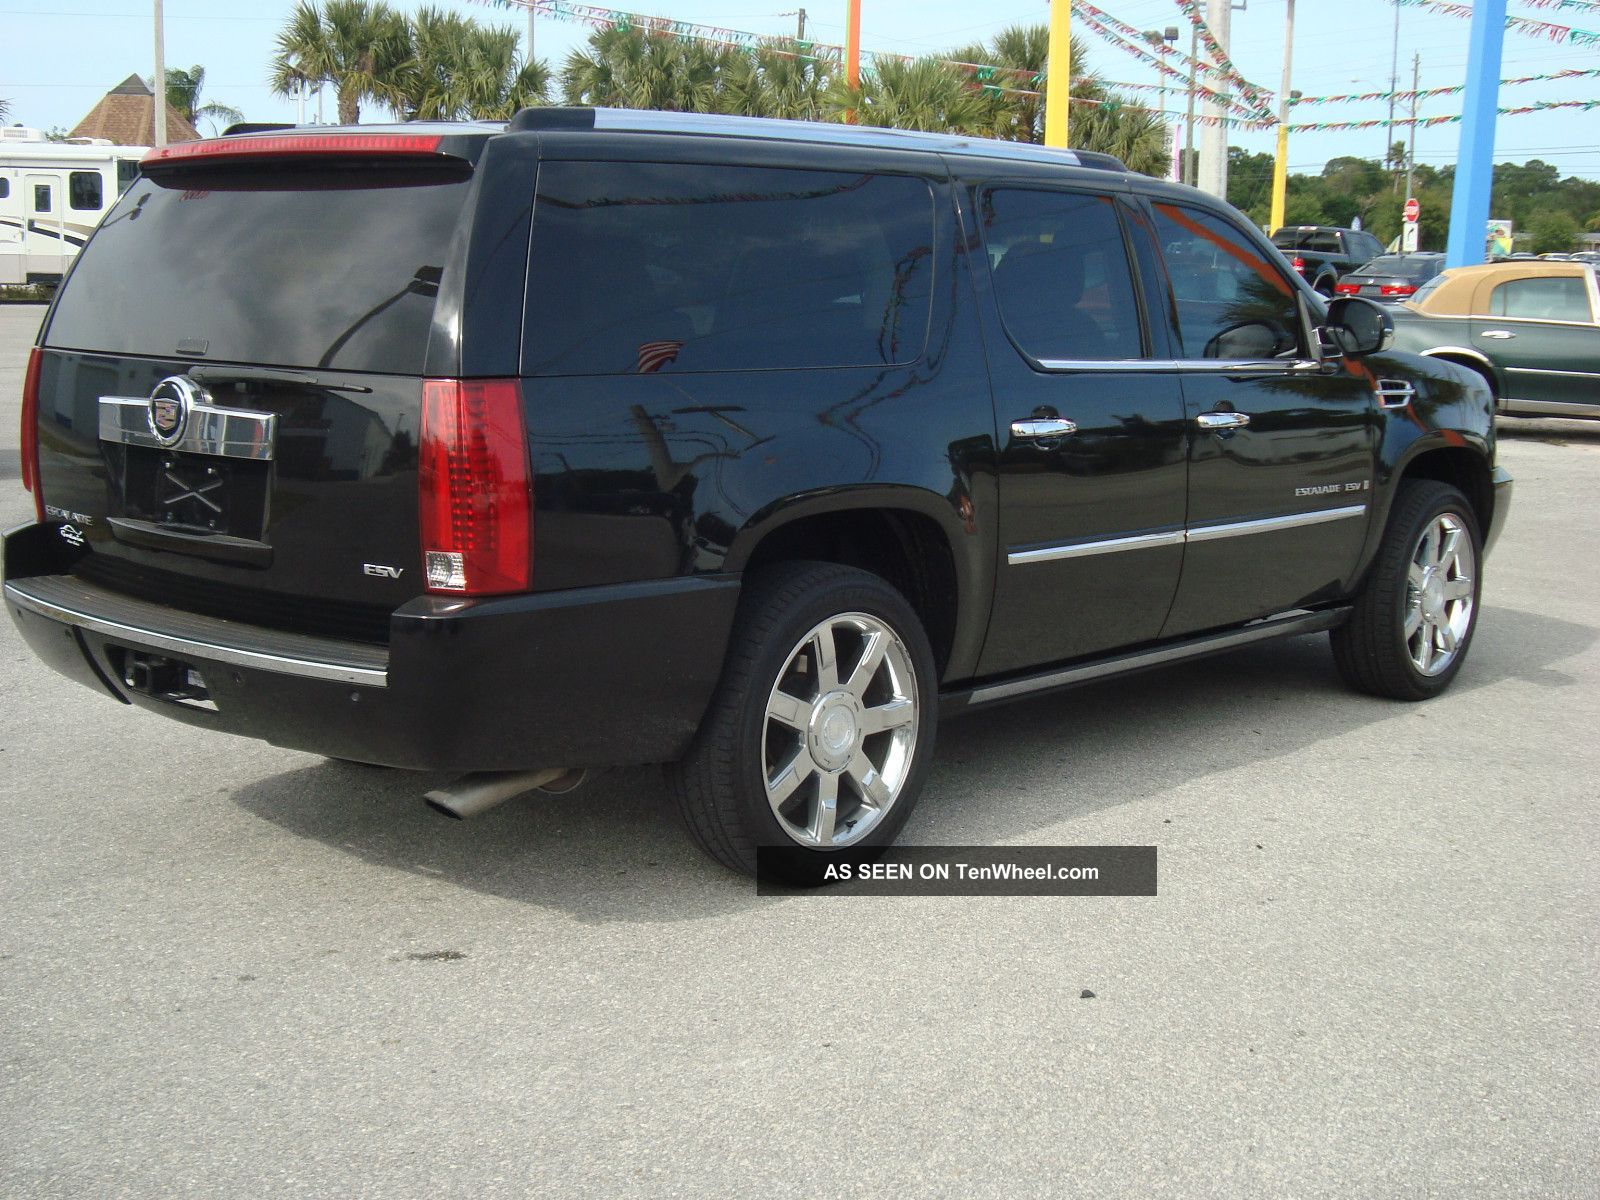 2007 cadillac escalade esv sport utility 4 door 6 2l escalade photo. Cars Review. Best American Auto & Cars Review